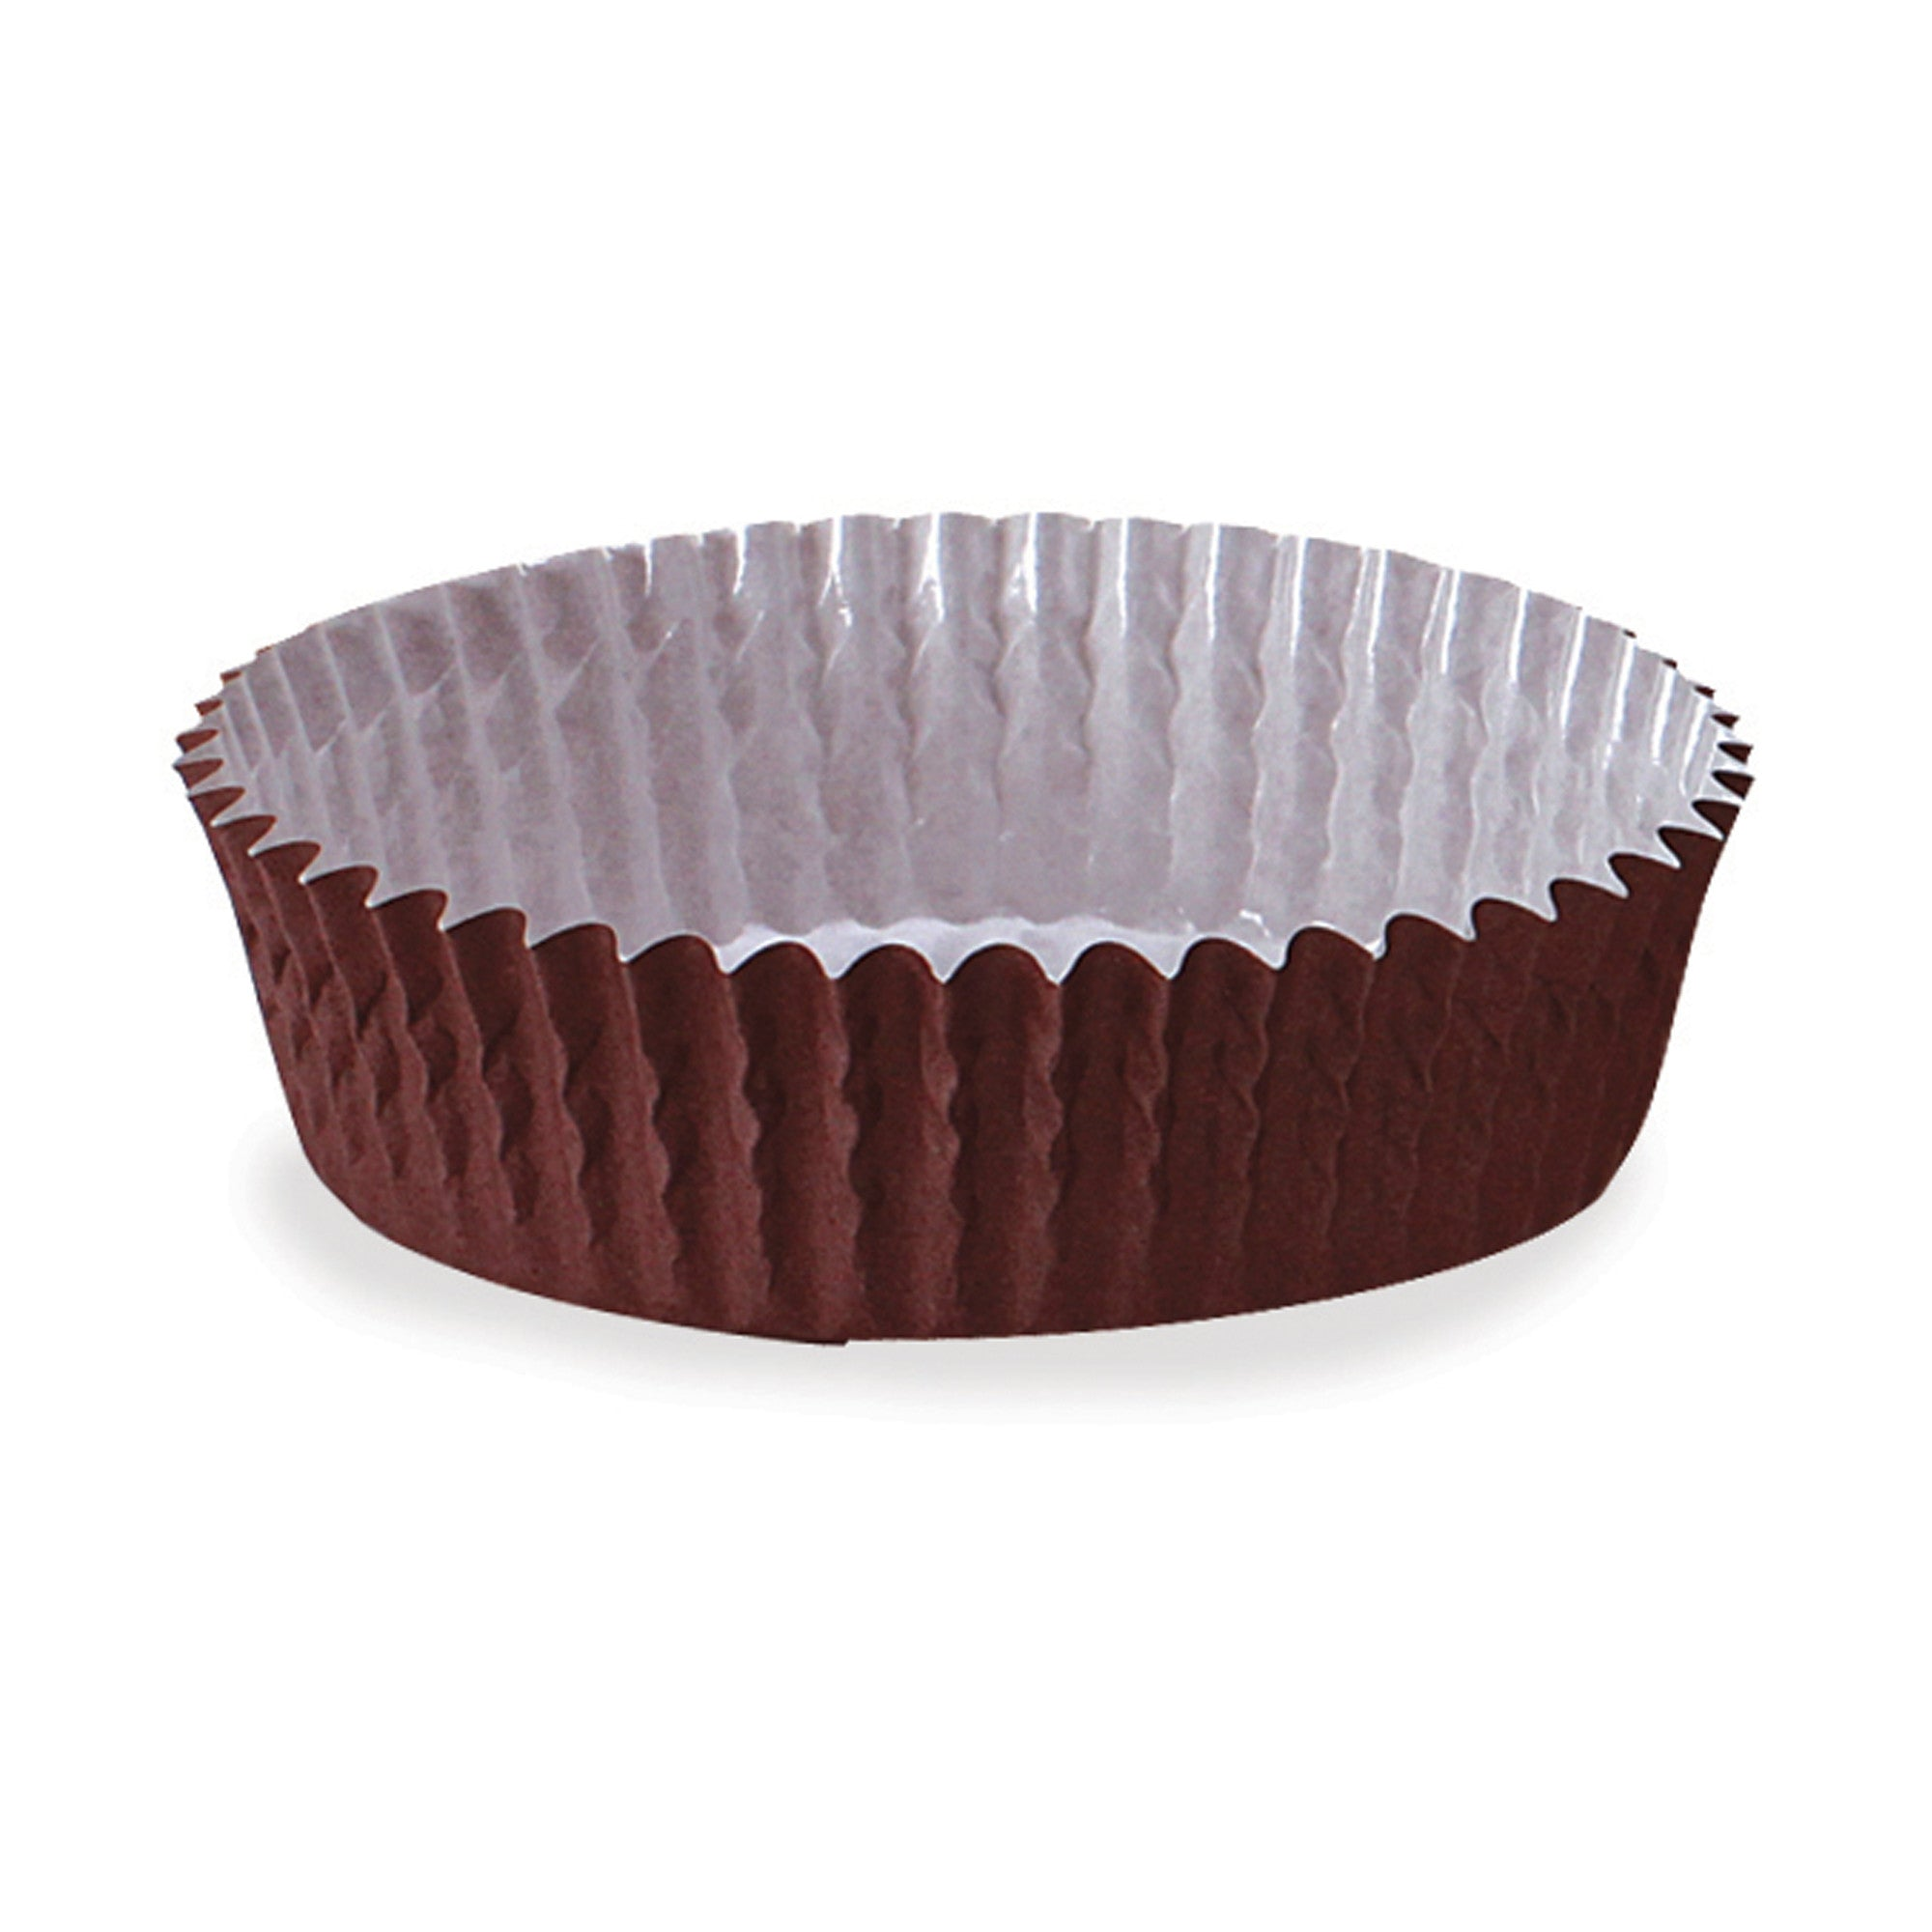 Ruffled Baking Cups, PTC09020S - Welcome Home Brands